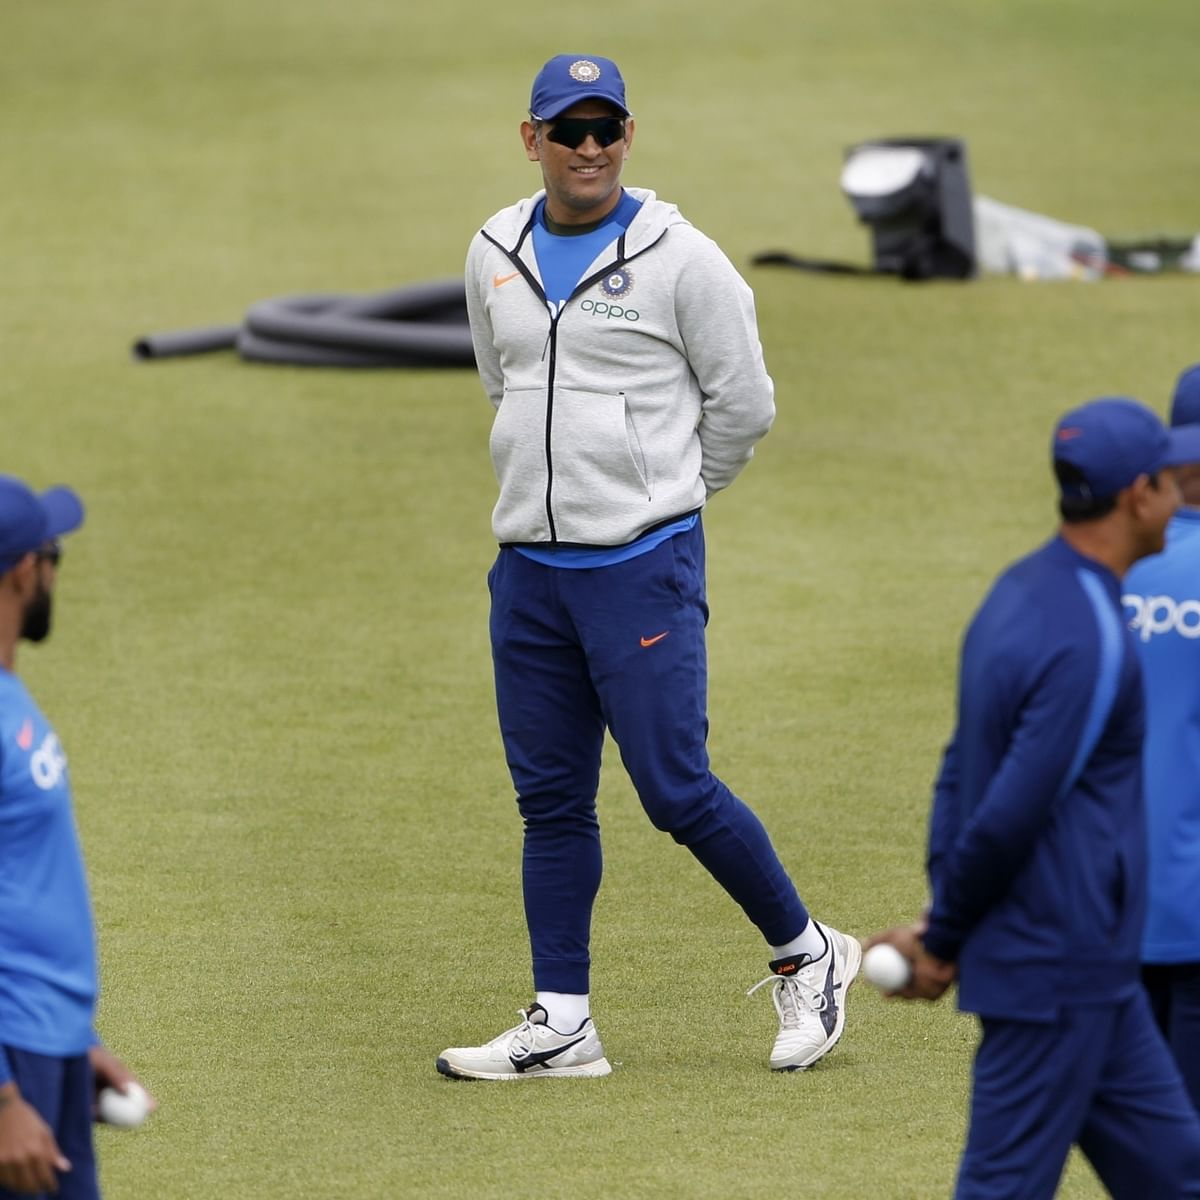 India's MS Dhoni during a practice session. A file picture. (Photo: Surjeet Yadav/IANS)